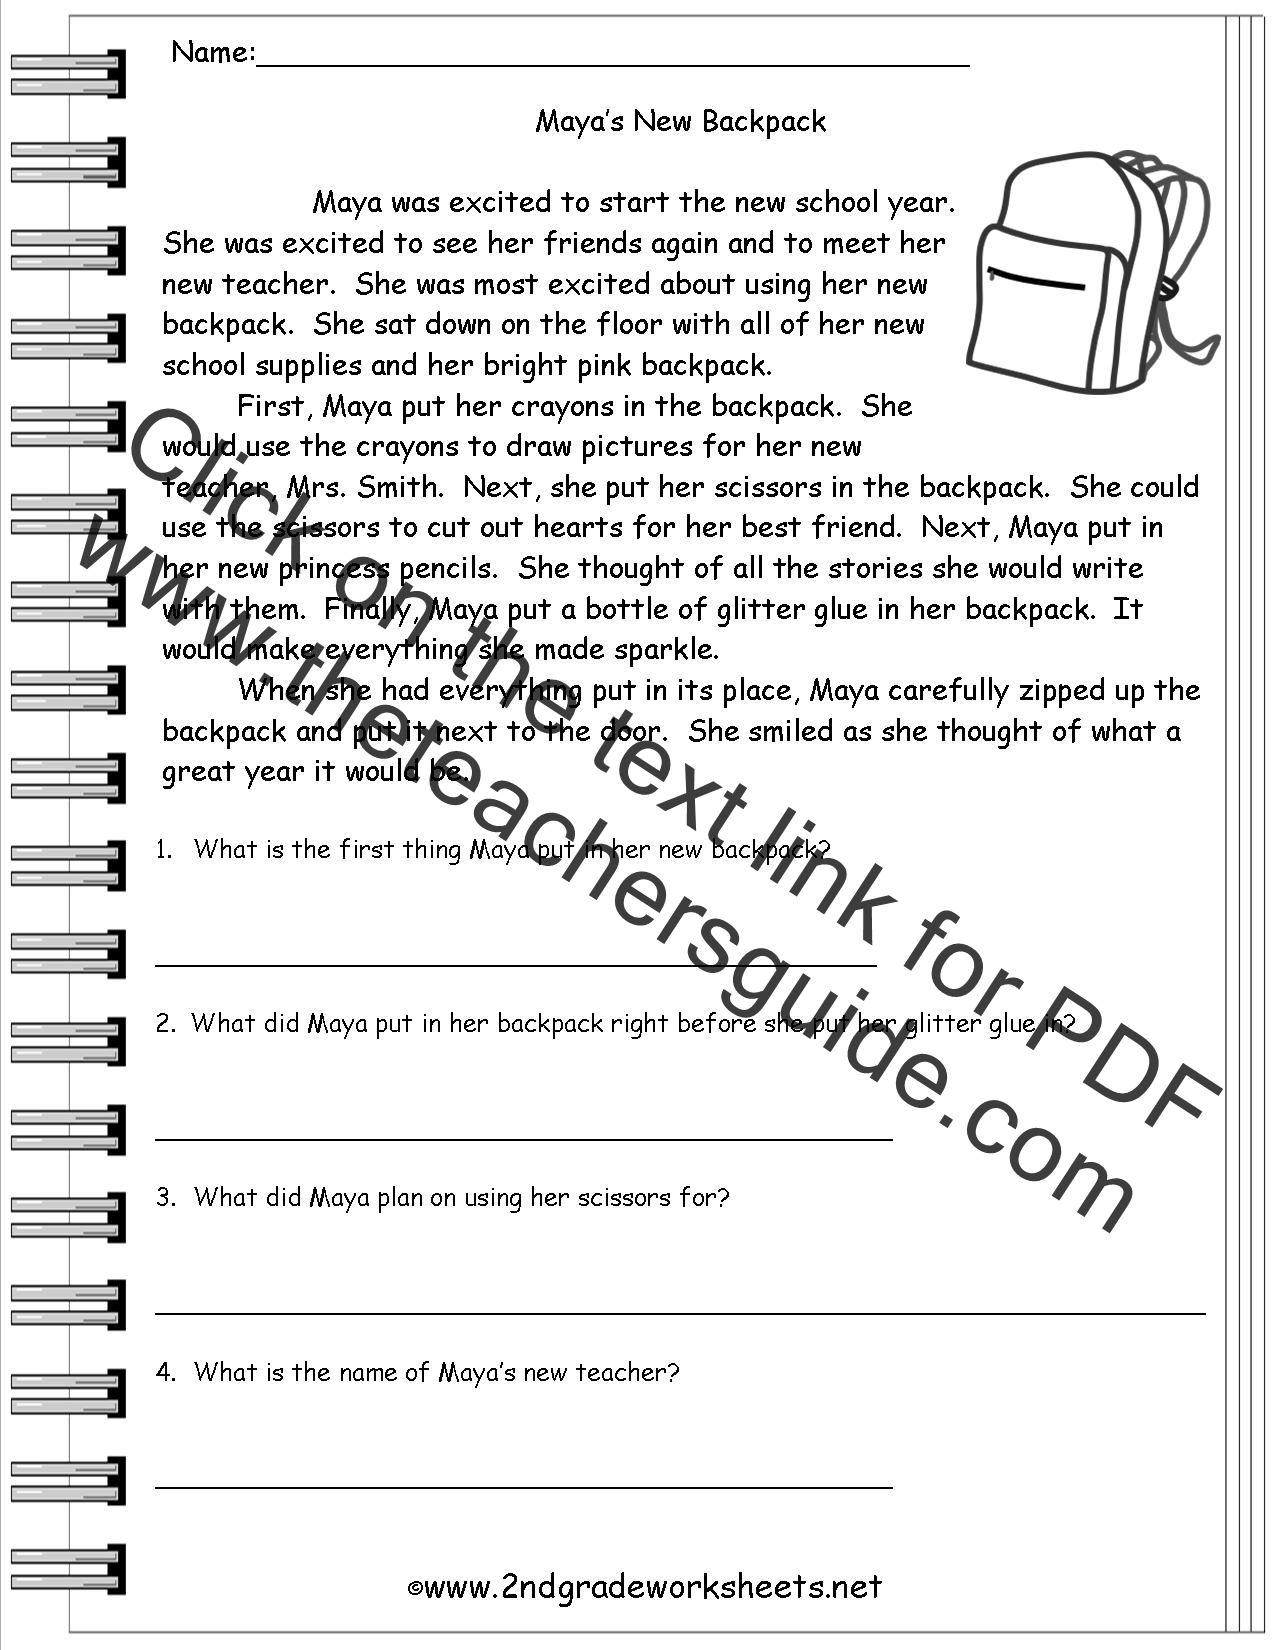 Printables Printable 3rd Grade Reading Worksheets printable 2nd grade reading worksheets imperialdesignstudio free grade